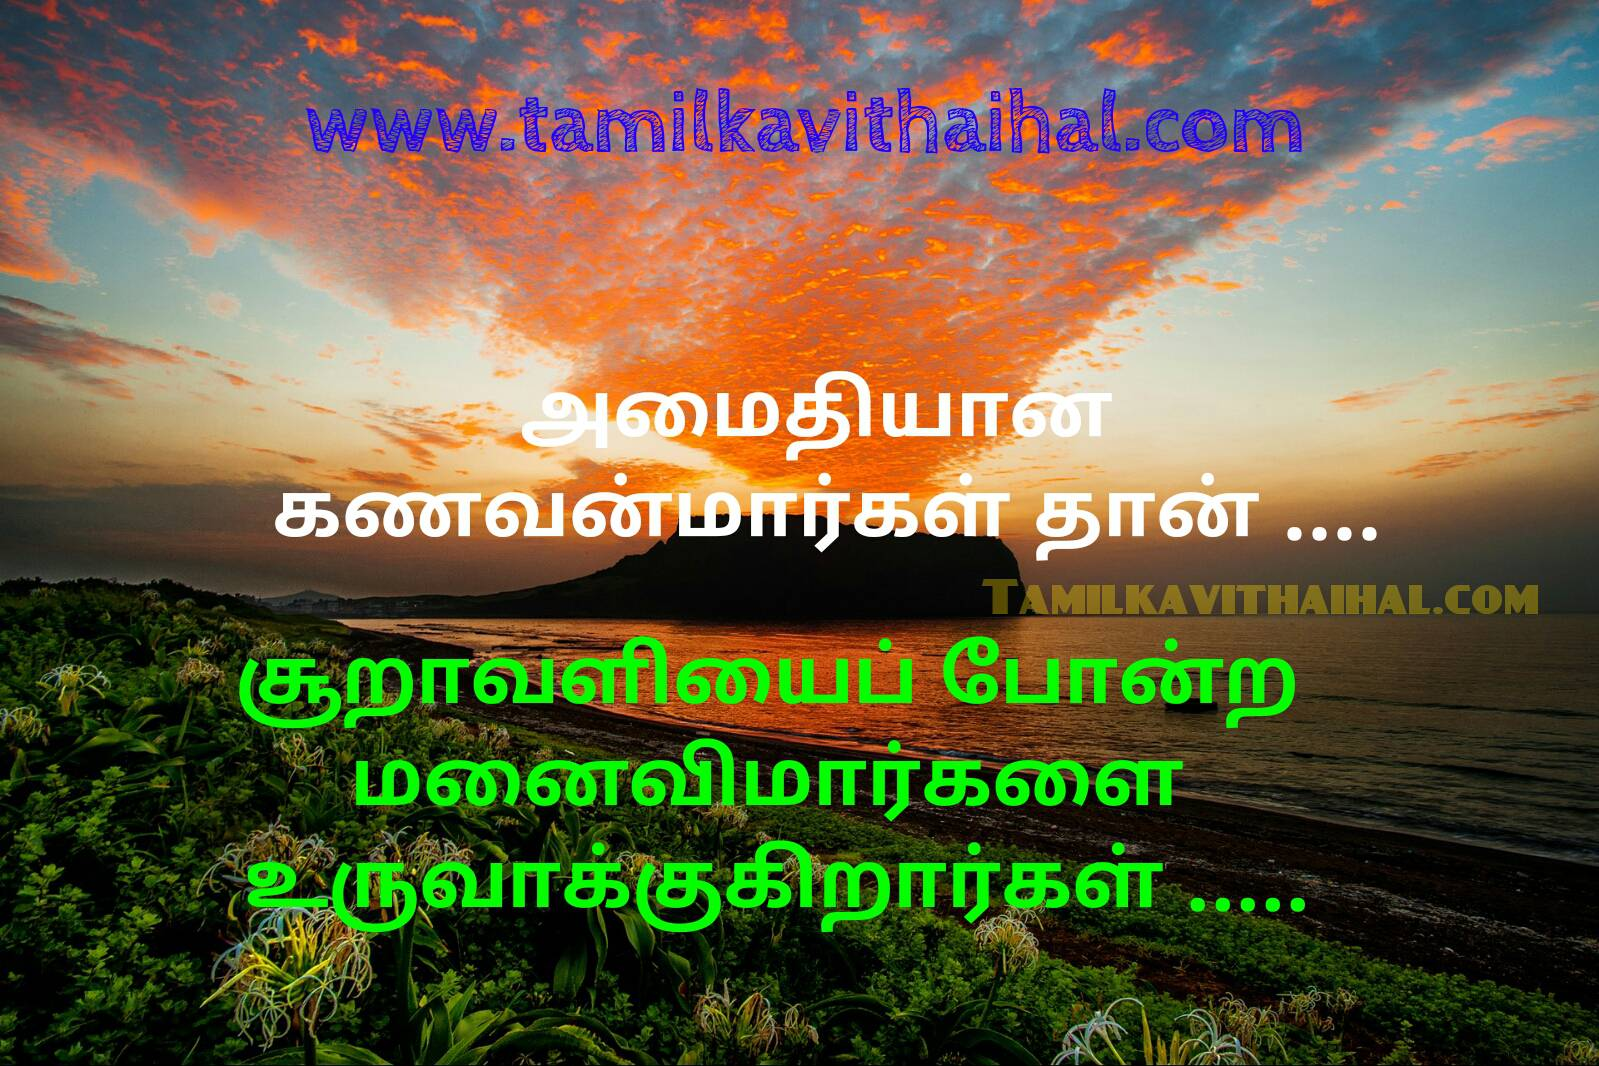 Funny husband and wife quotes in tamil best vazhkai thathuvam marriage love romance kavithai picture